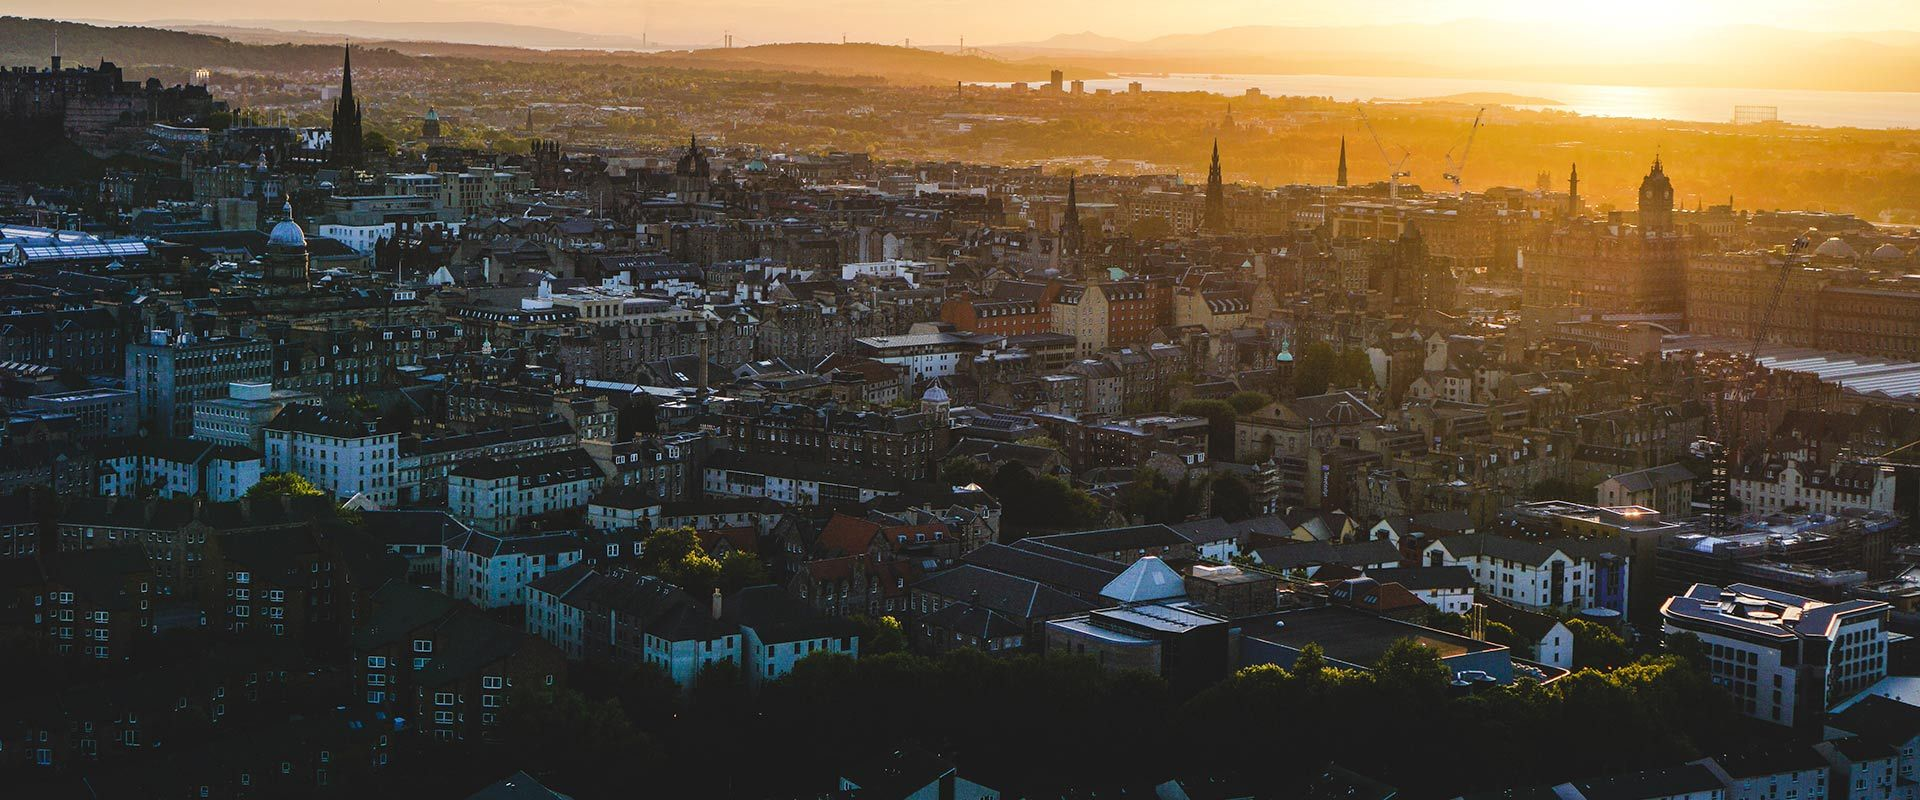 Guest Blog: Businesses want Scotland to lead on climate change